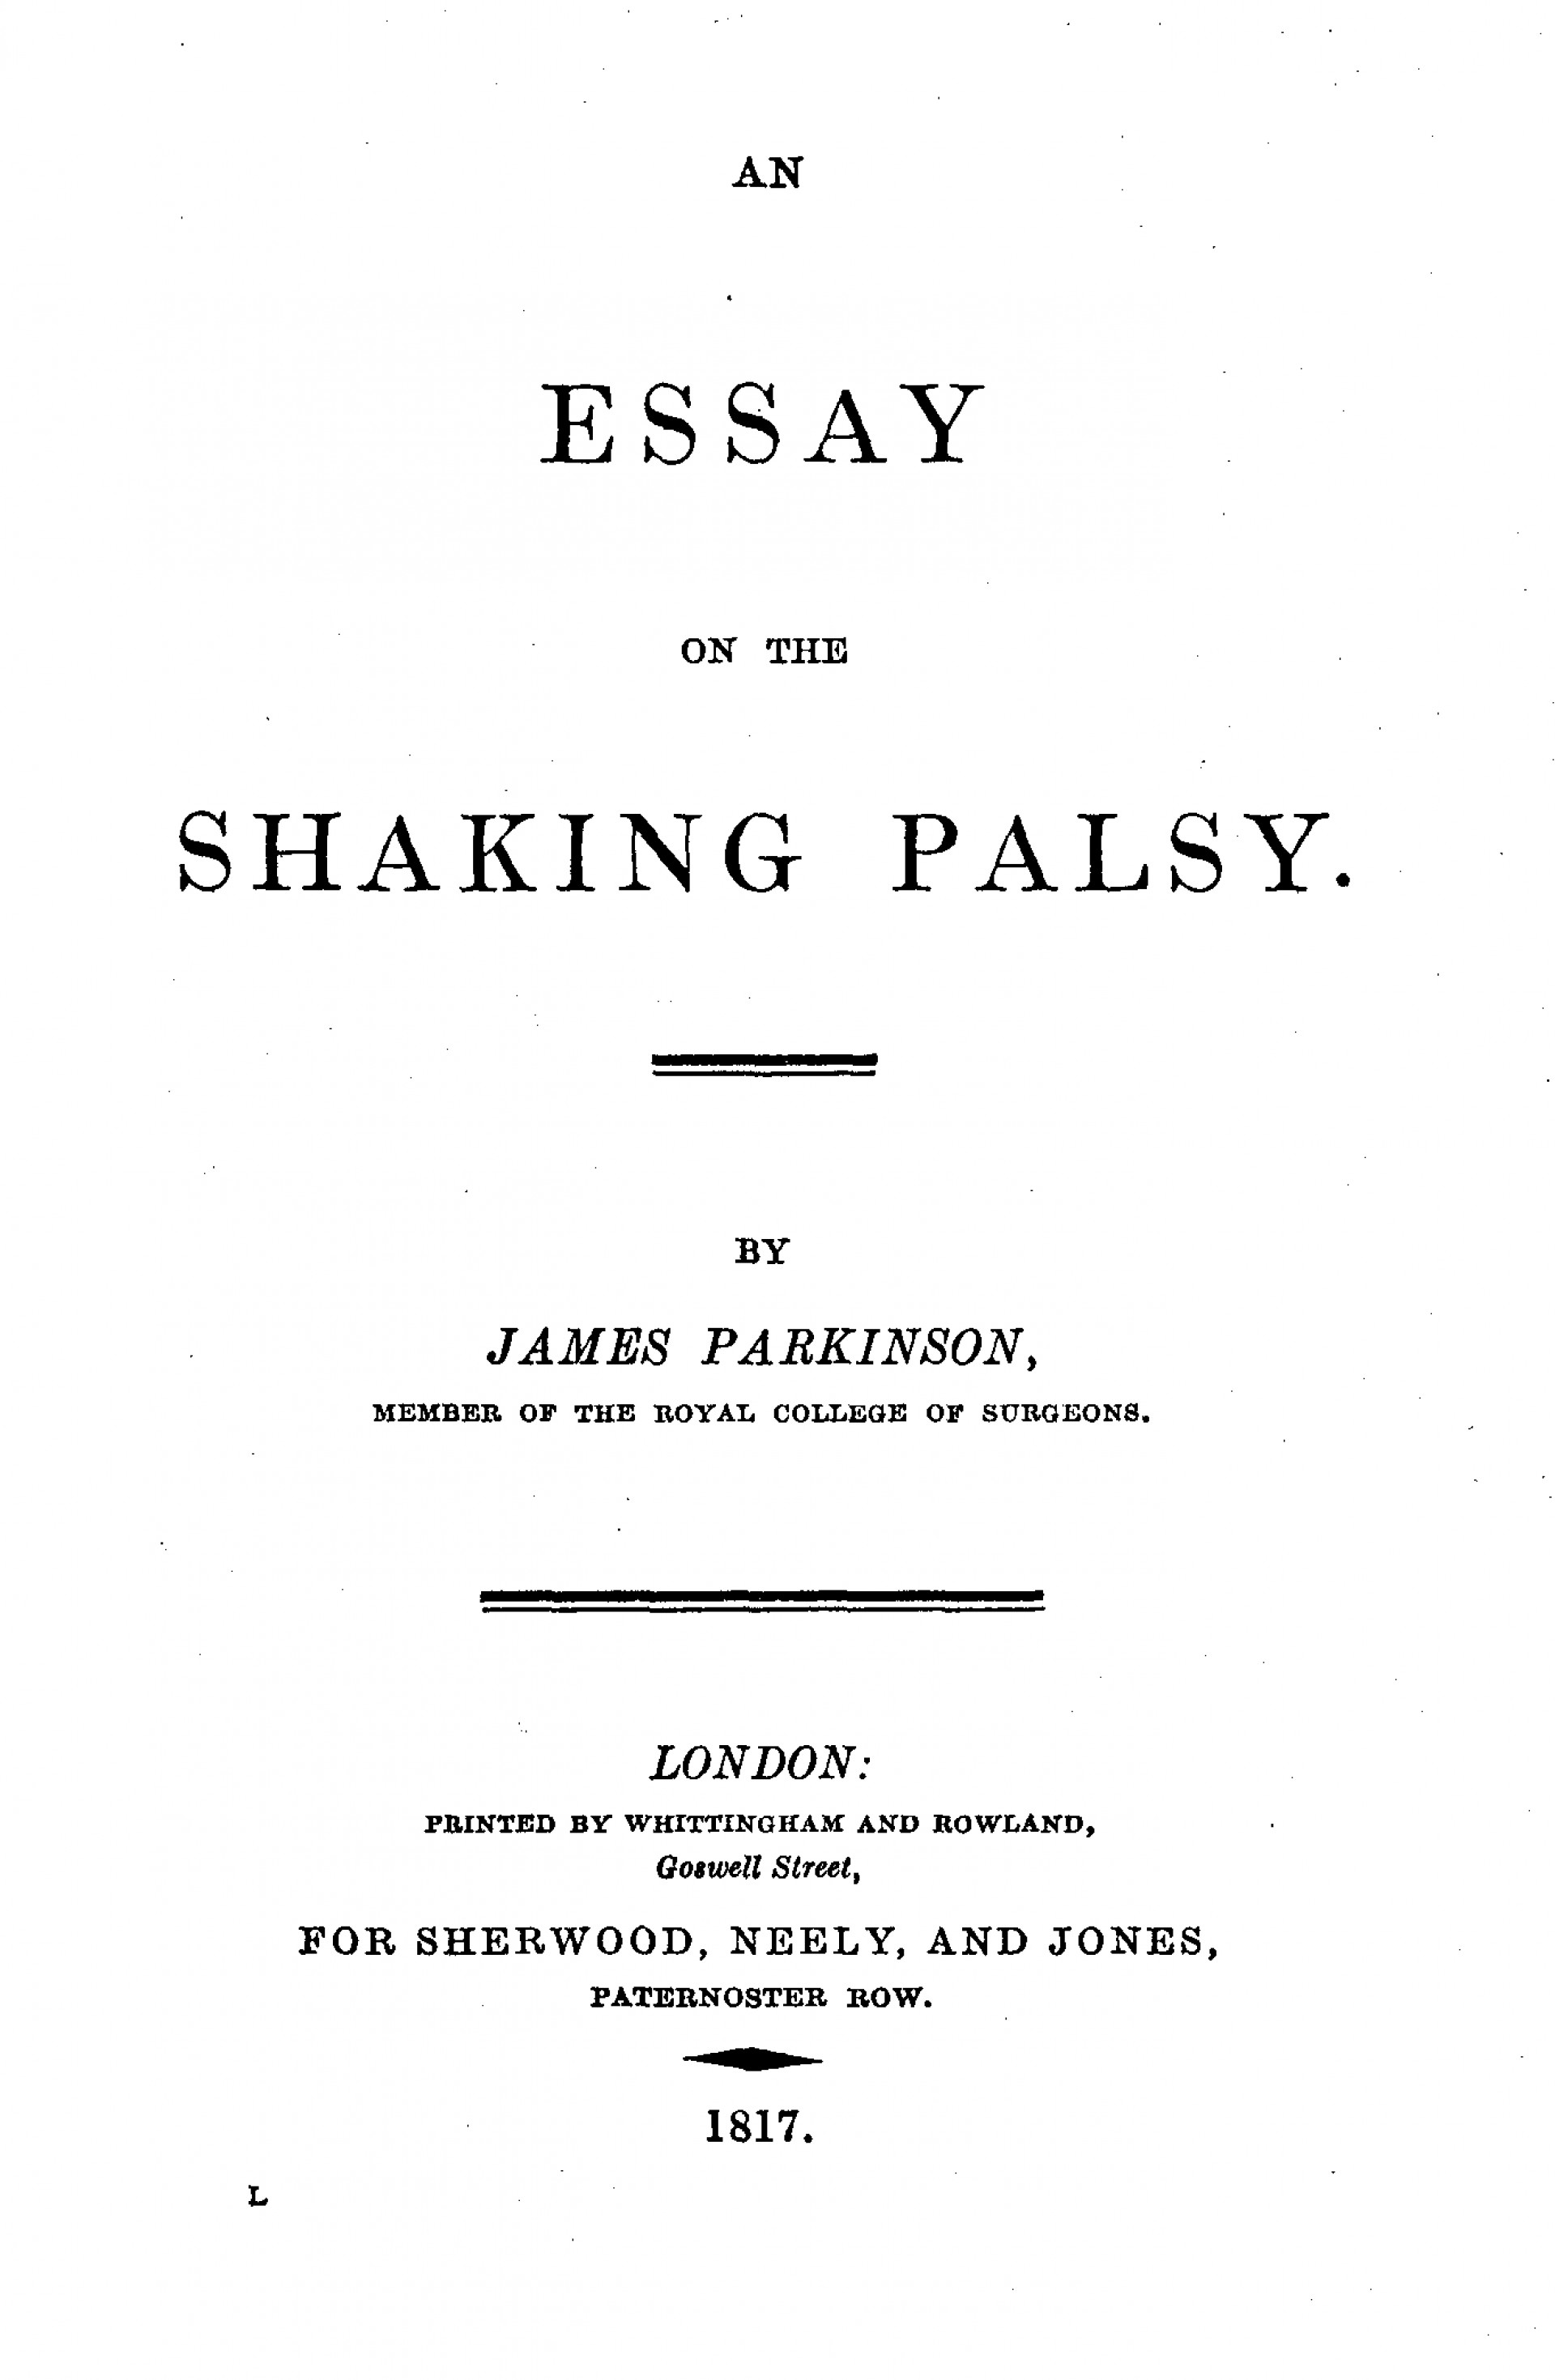 009 Essay Example Parkinson2c On The Shaking Palsy 28title Page29 What Is Cover Page For Awesome A An Does 2 Look Like Two Should I Put Of 1920